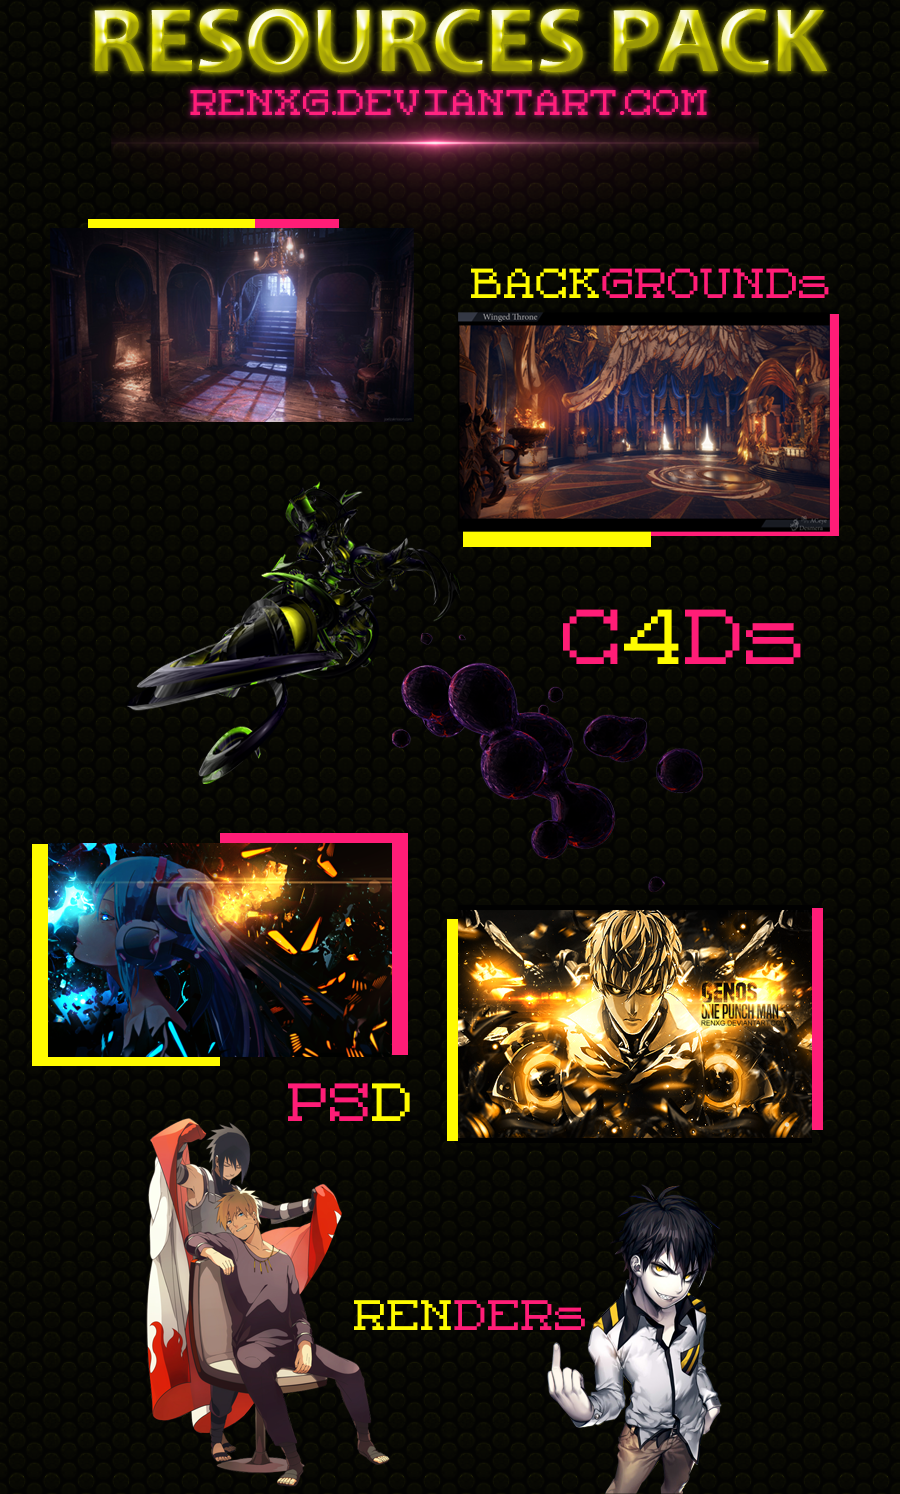 resources_pack_by_renxg-dagsb5w.png